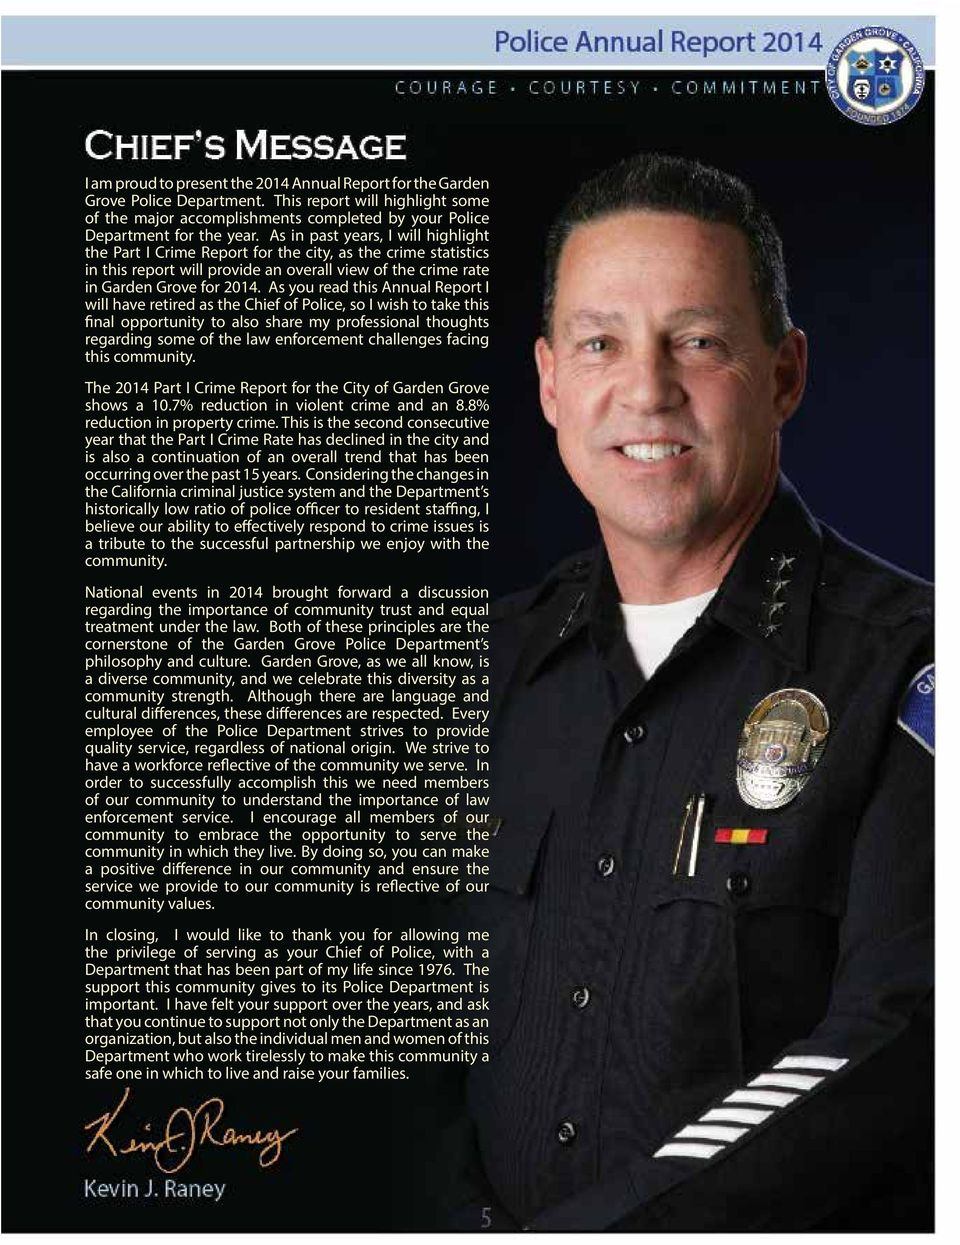 As you read this Annual Report I will have retired as the Chief of Police, so I wish to take this final opportunity to also share my professional thoughts regarding some of the law enforcement